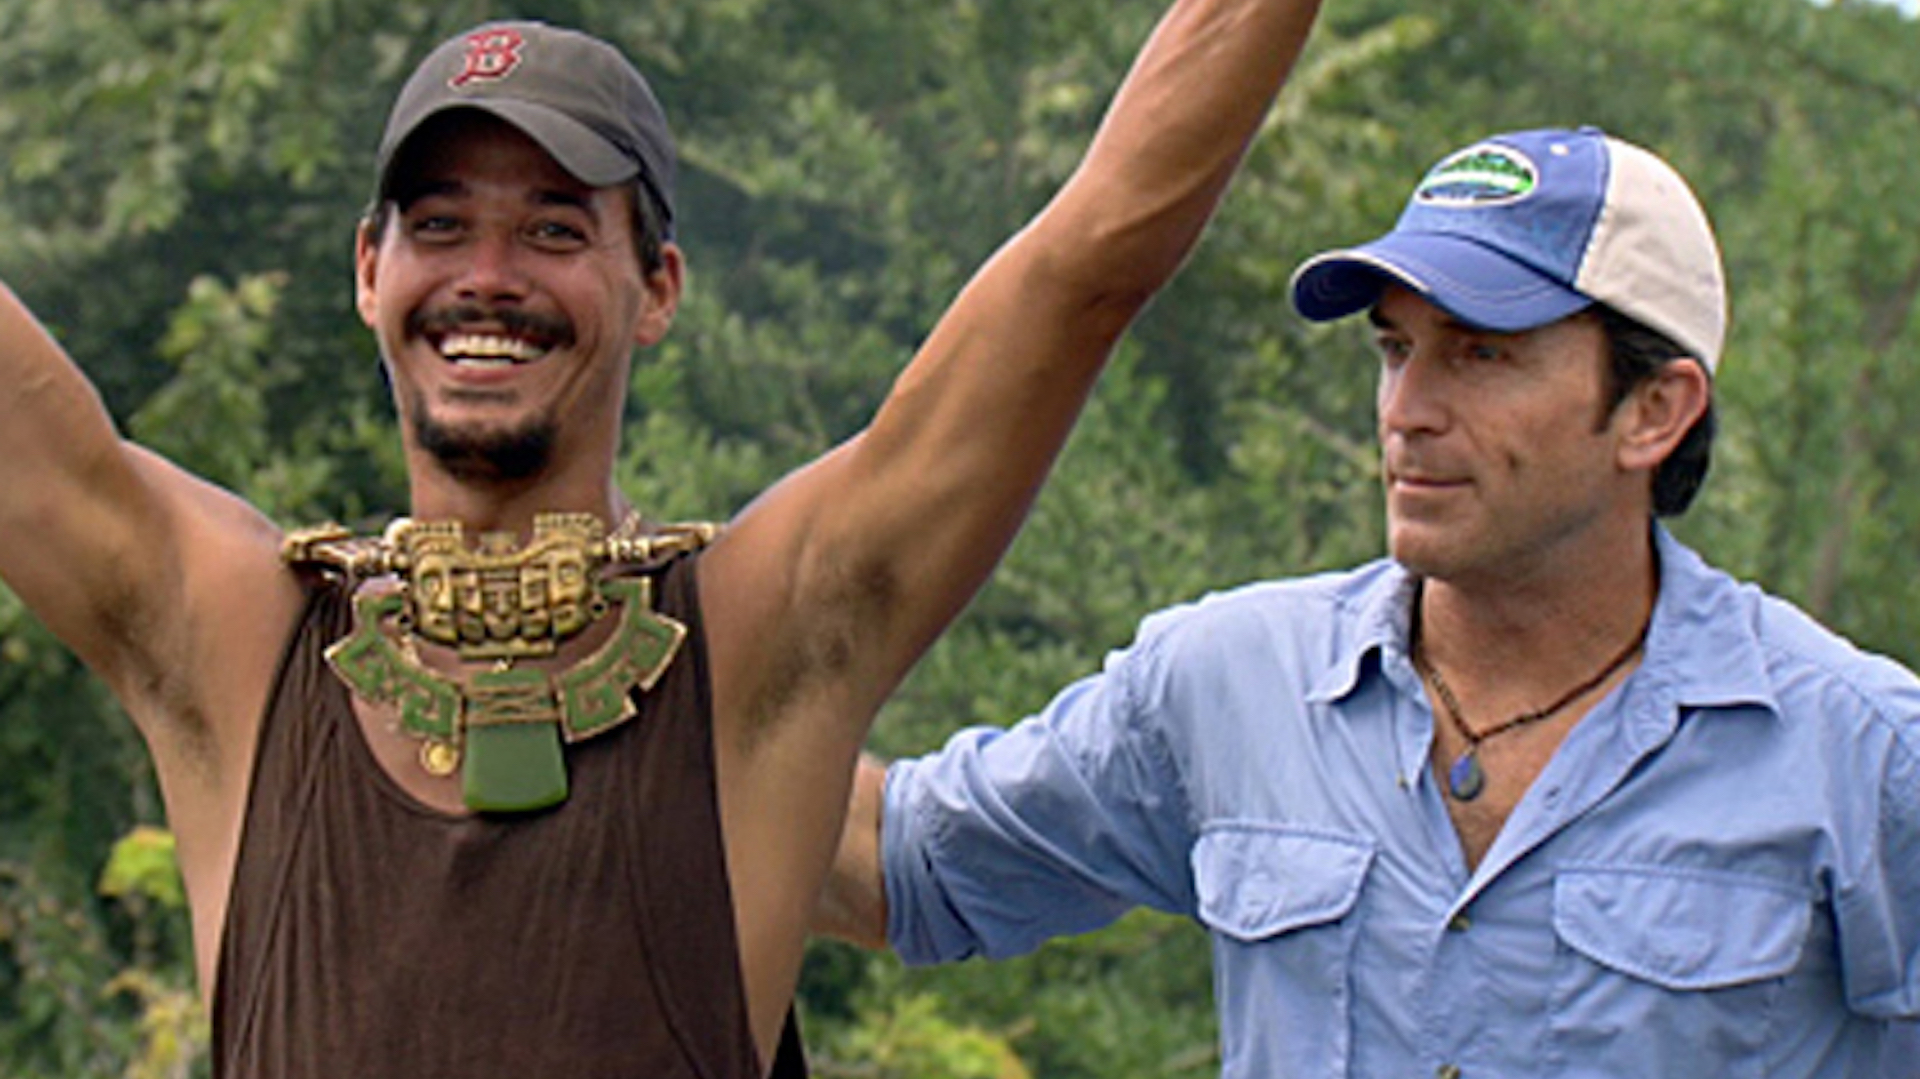 Rob Mariano wins Survivor: Redemption Island